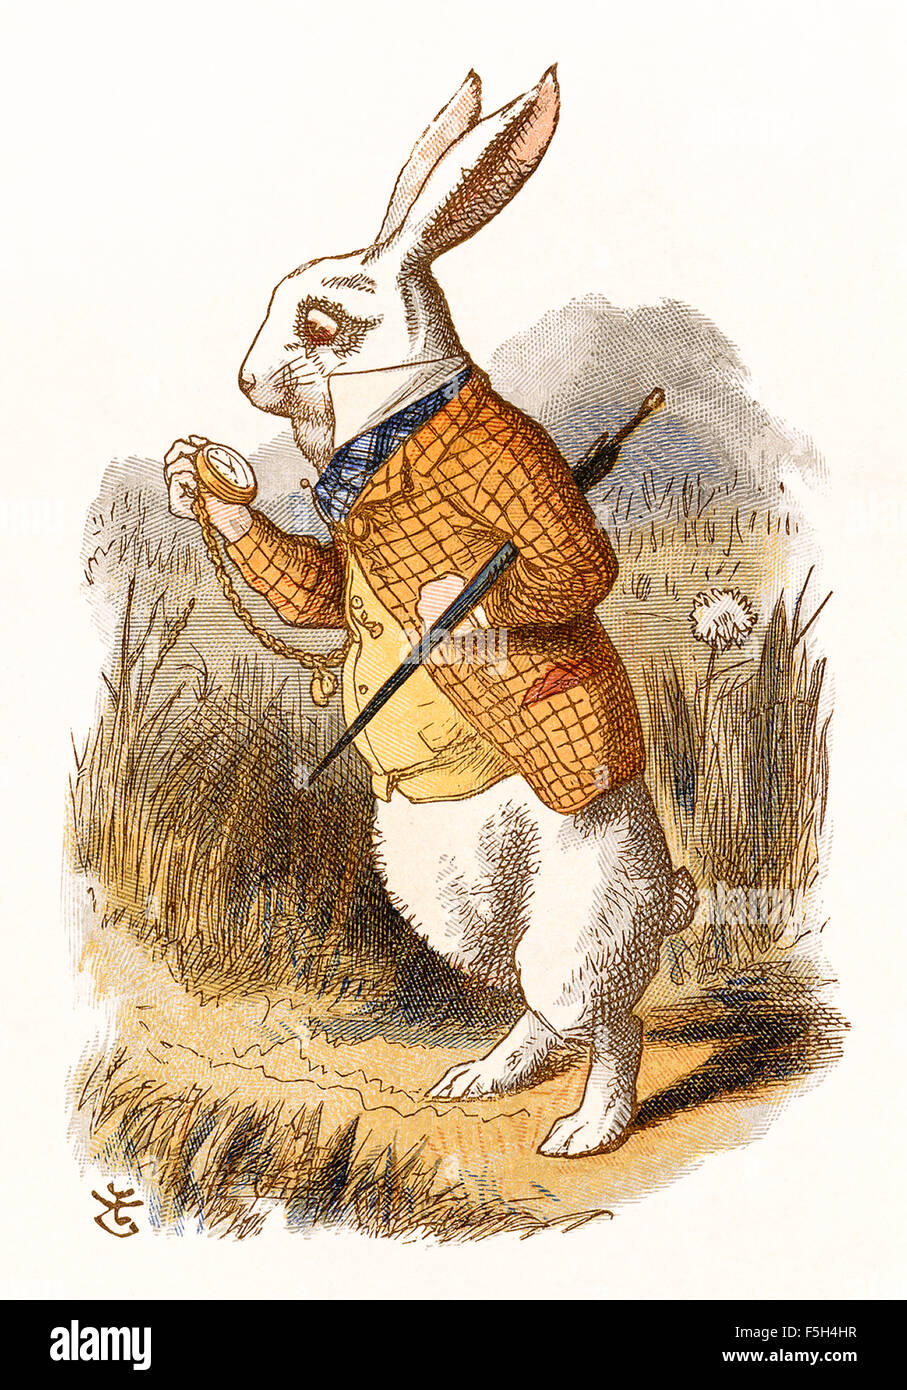 The White Rabbit Checks His Pocket Watch From The Nursery Alice